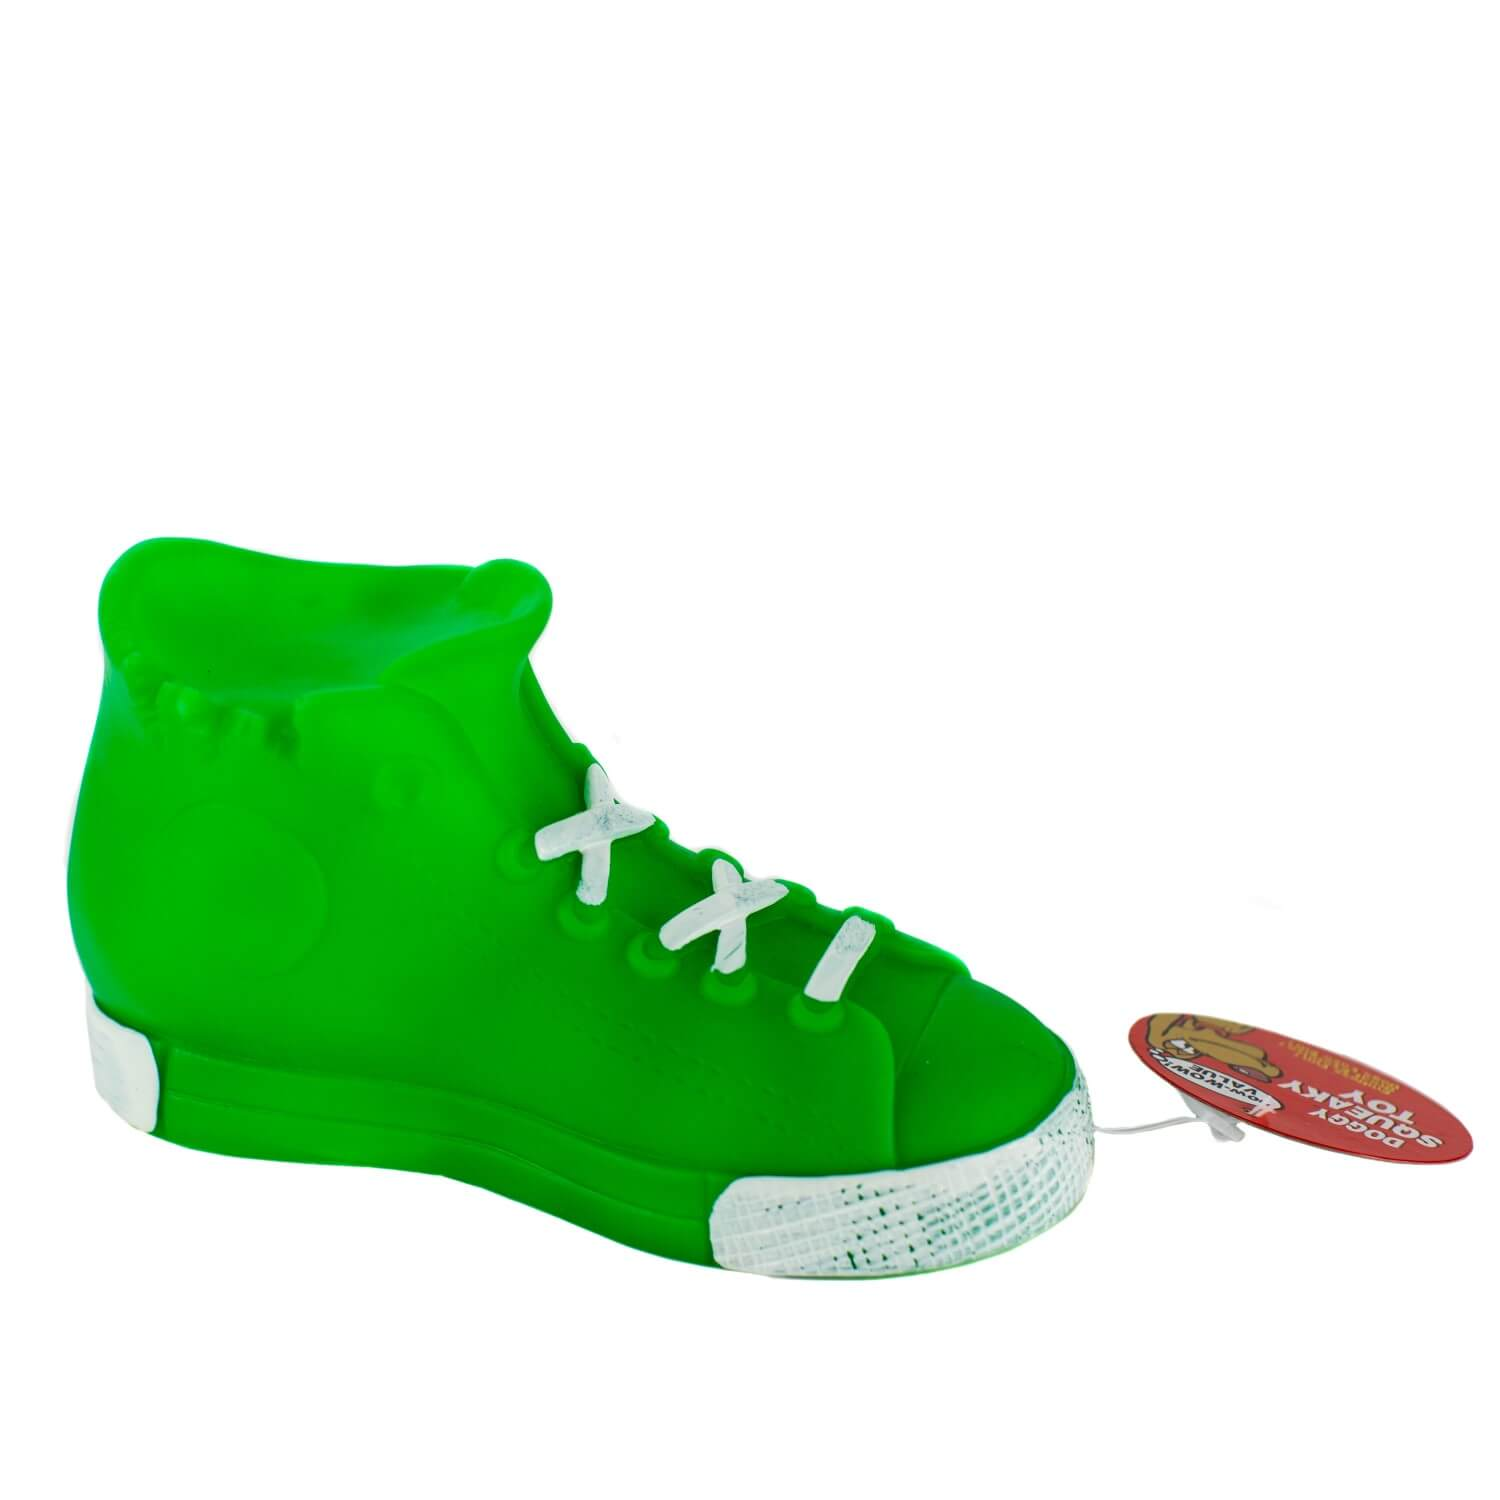 Green High Top Squeaky Toy Side View